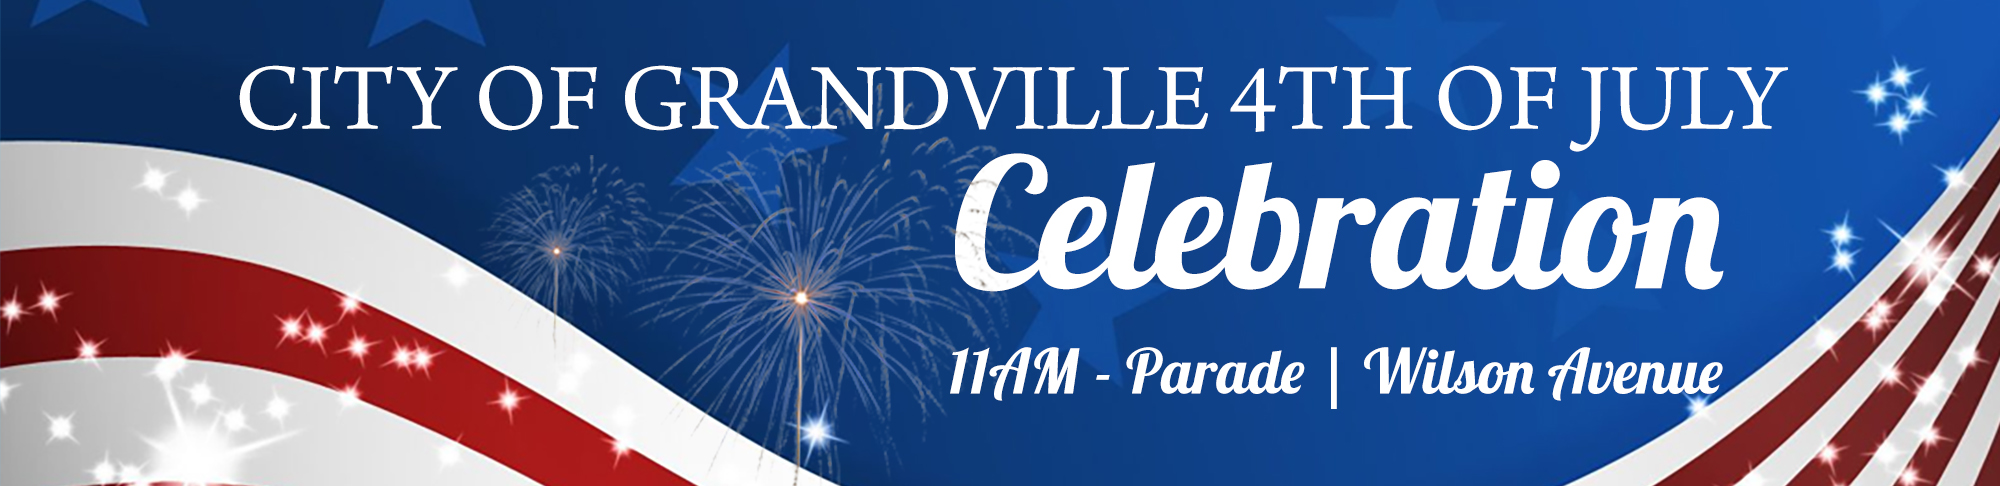 grandville 4th of July lg.jpg